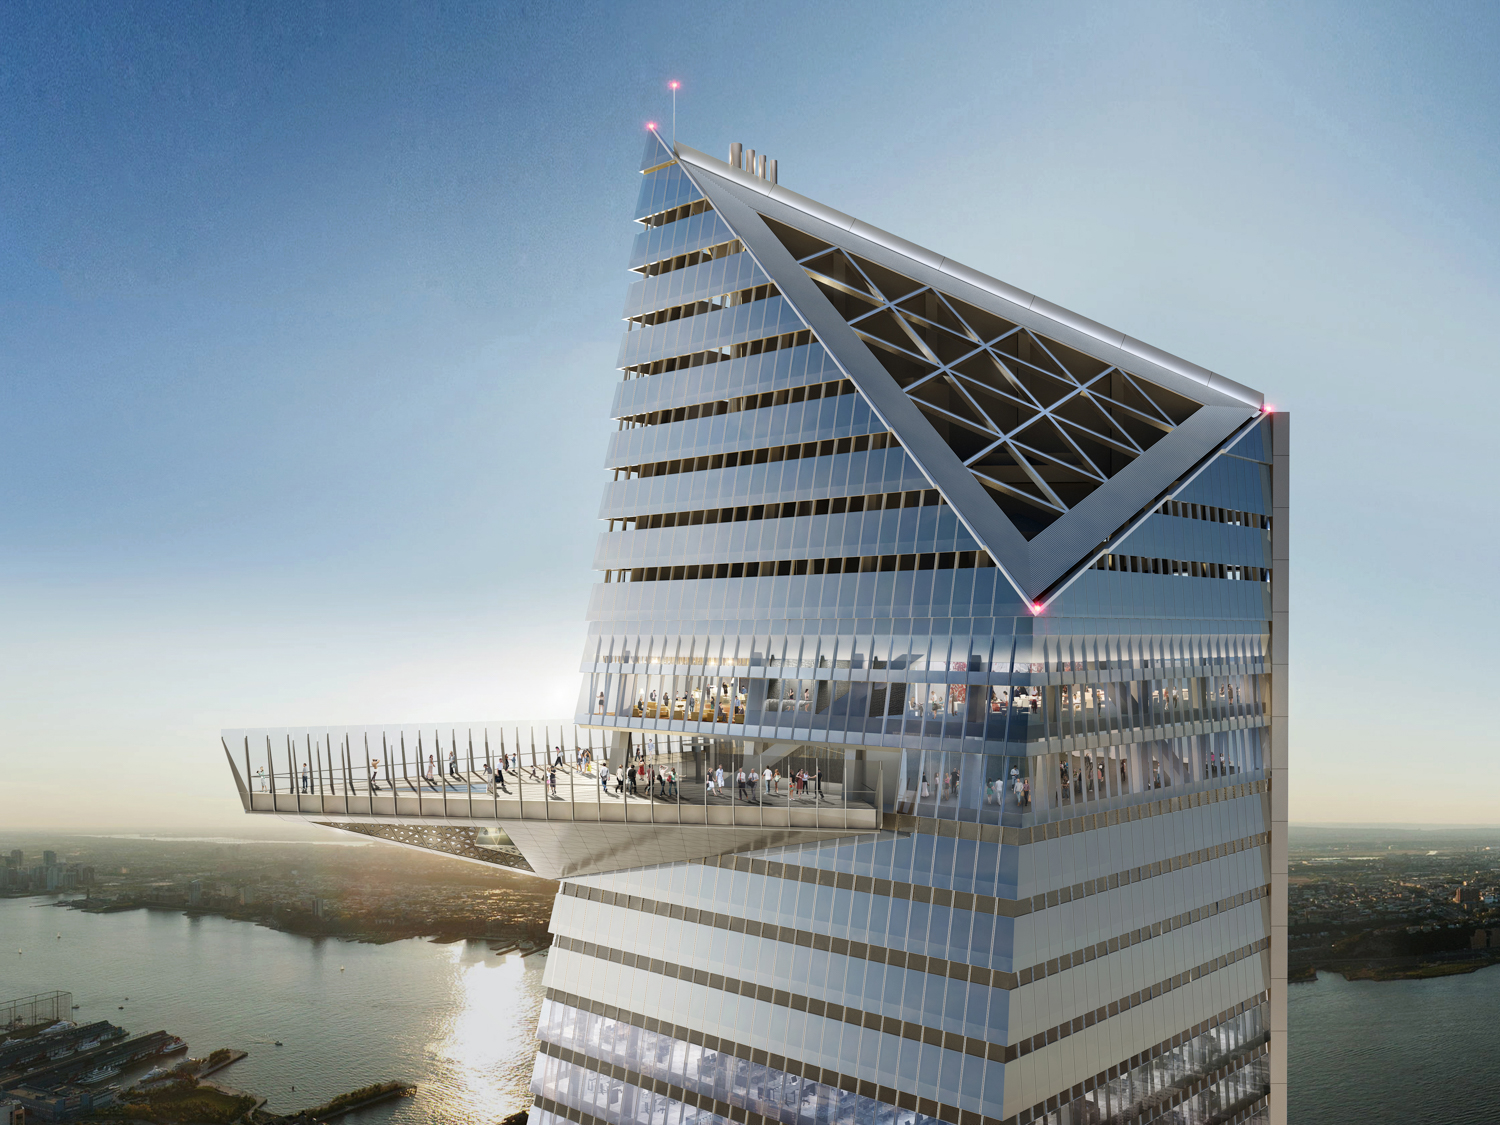 Hudson Yards Observation Deck, rendering courtesy of Related and Oxford